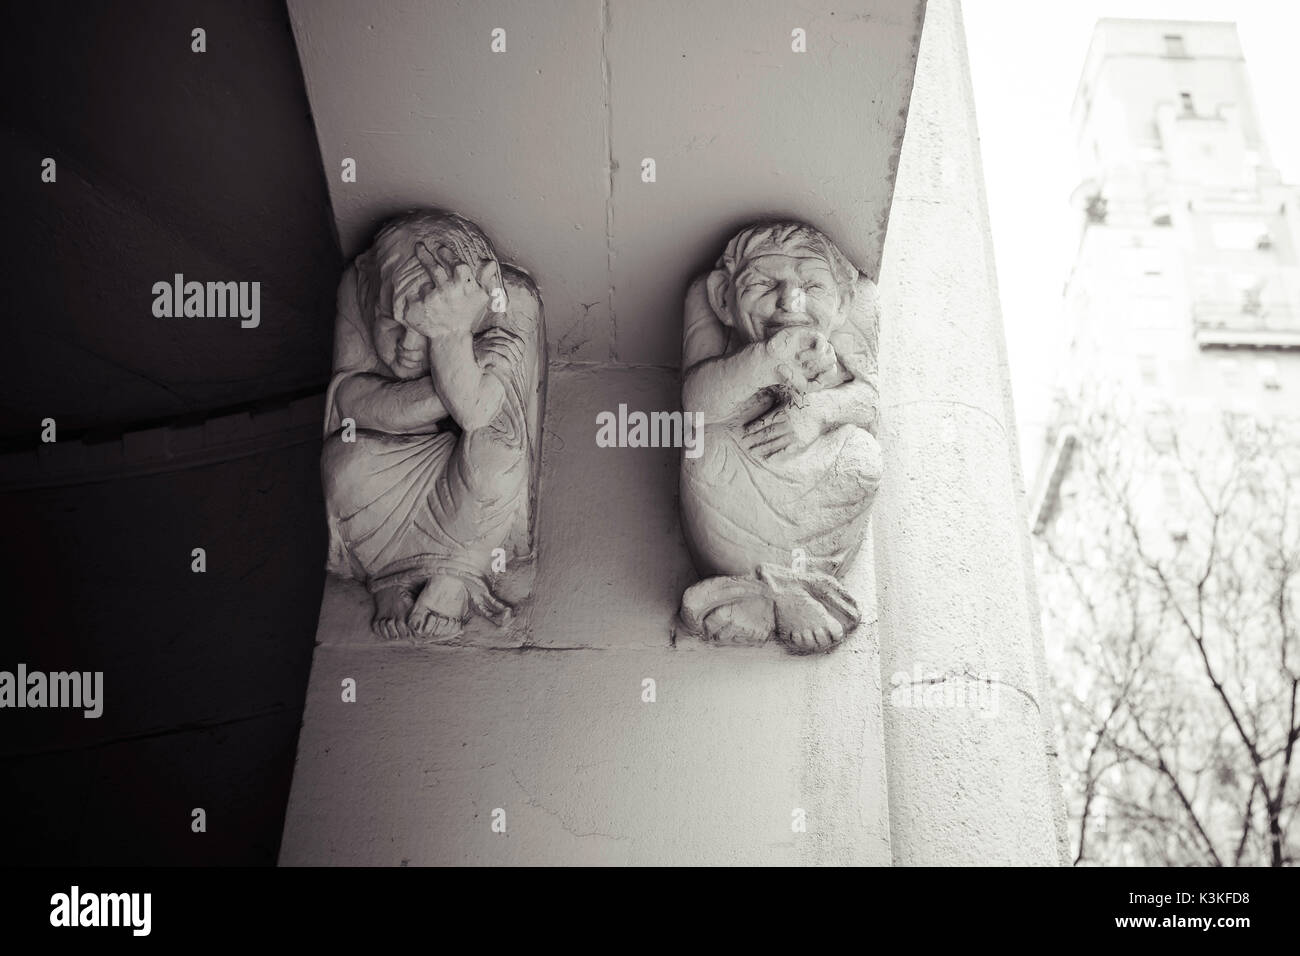 Depressed and laughing stucco sculptures, historic building entrance, Manhatten, New York, USA - Stock Image